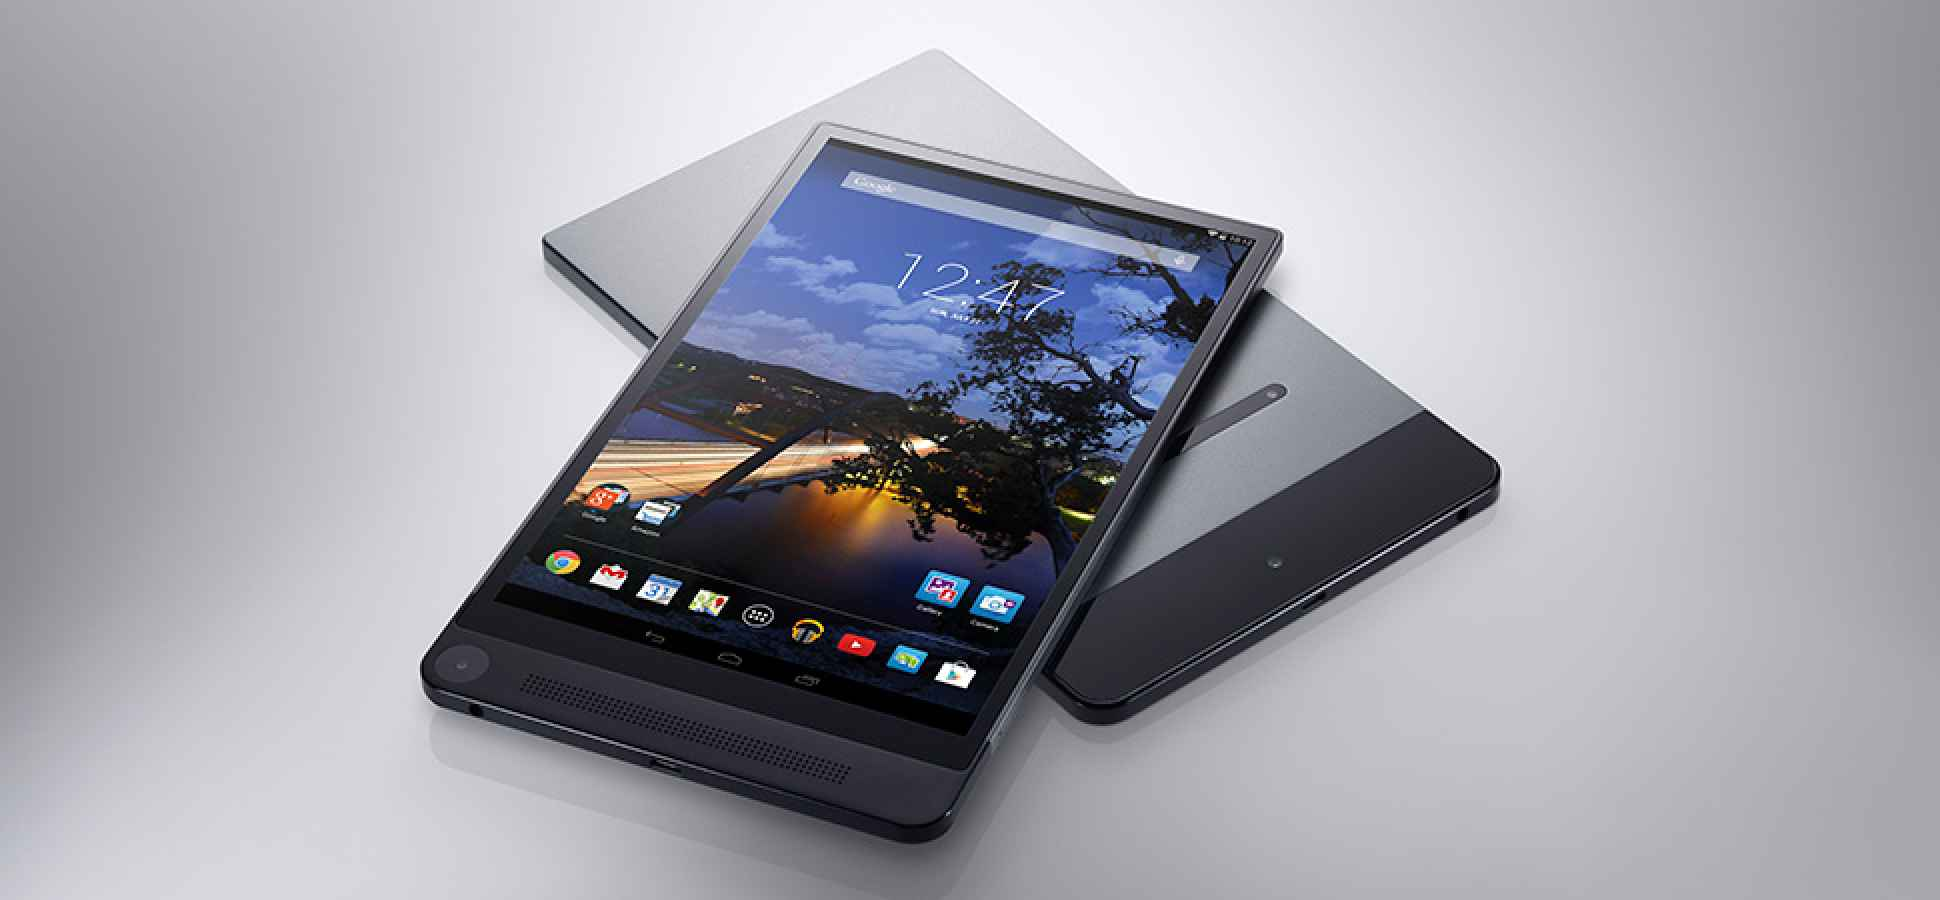 Reviewed: Finally, a Tablet That Beats the iPad Mini